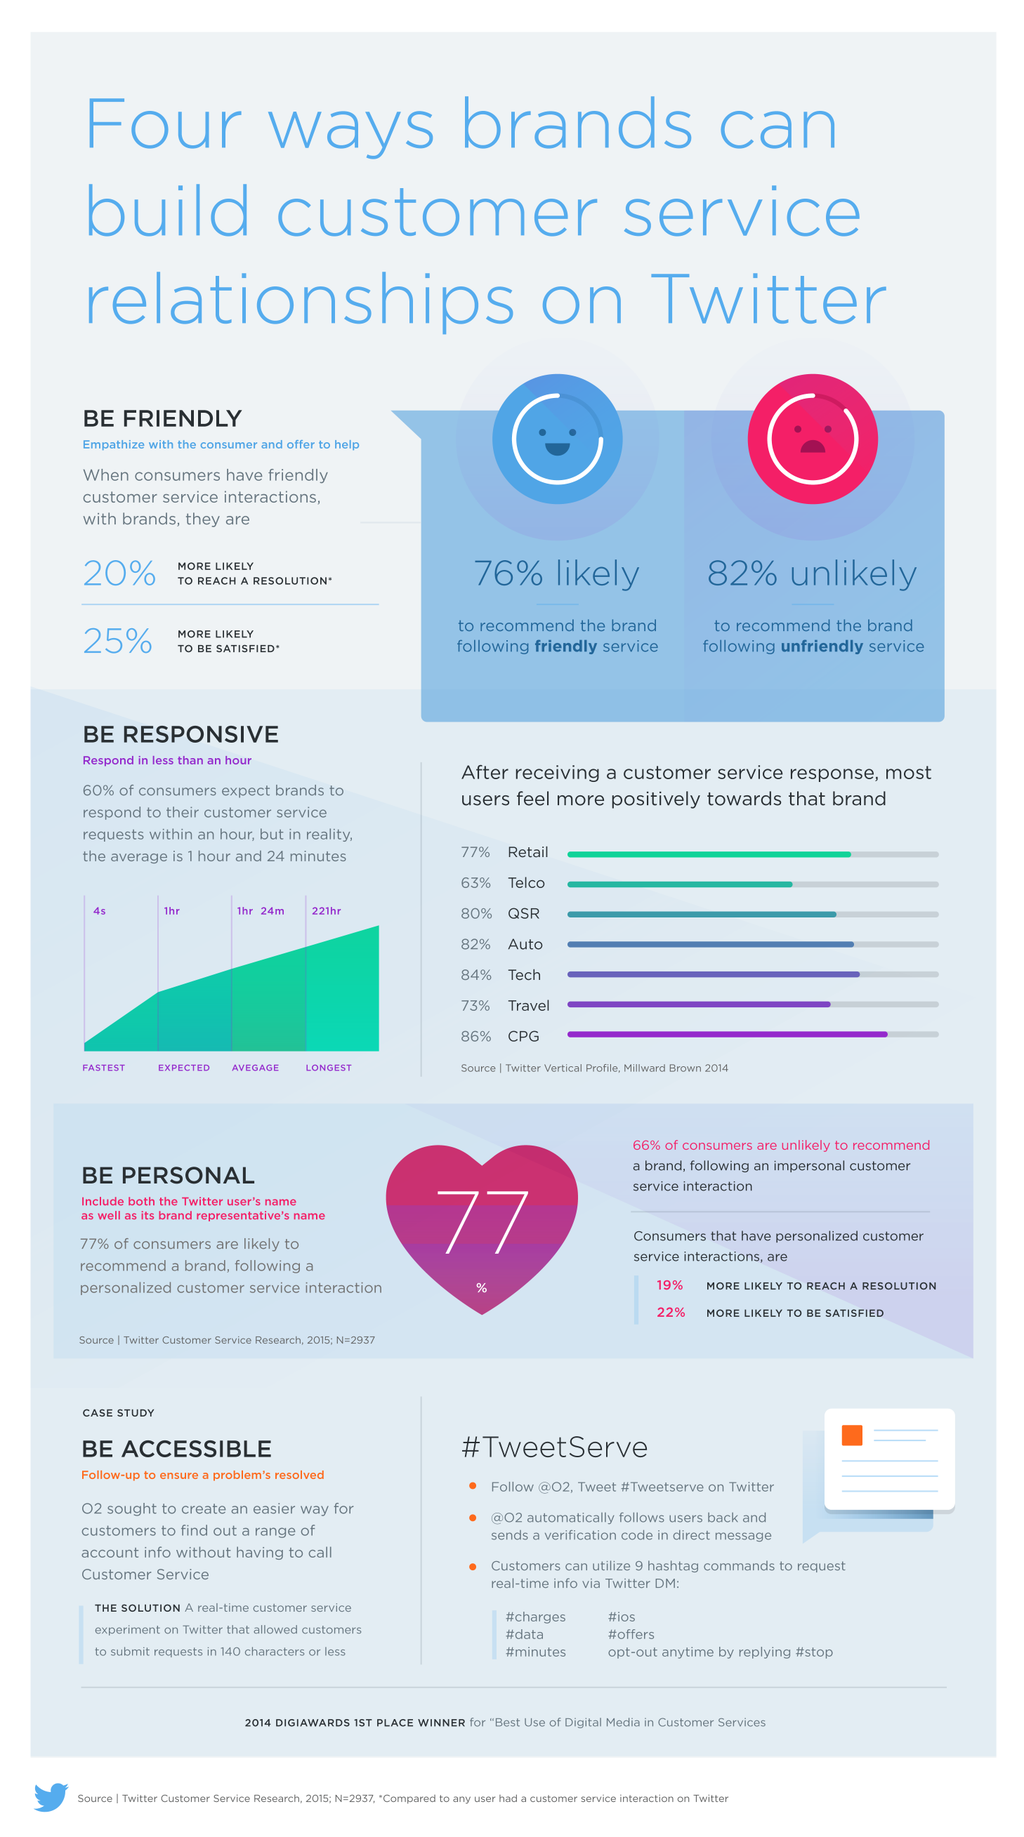 Research - Four ways brands can build customer service relationships on Twitter